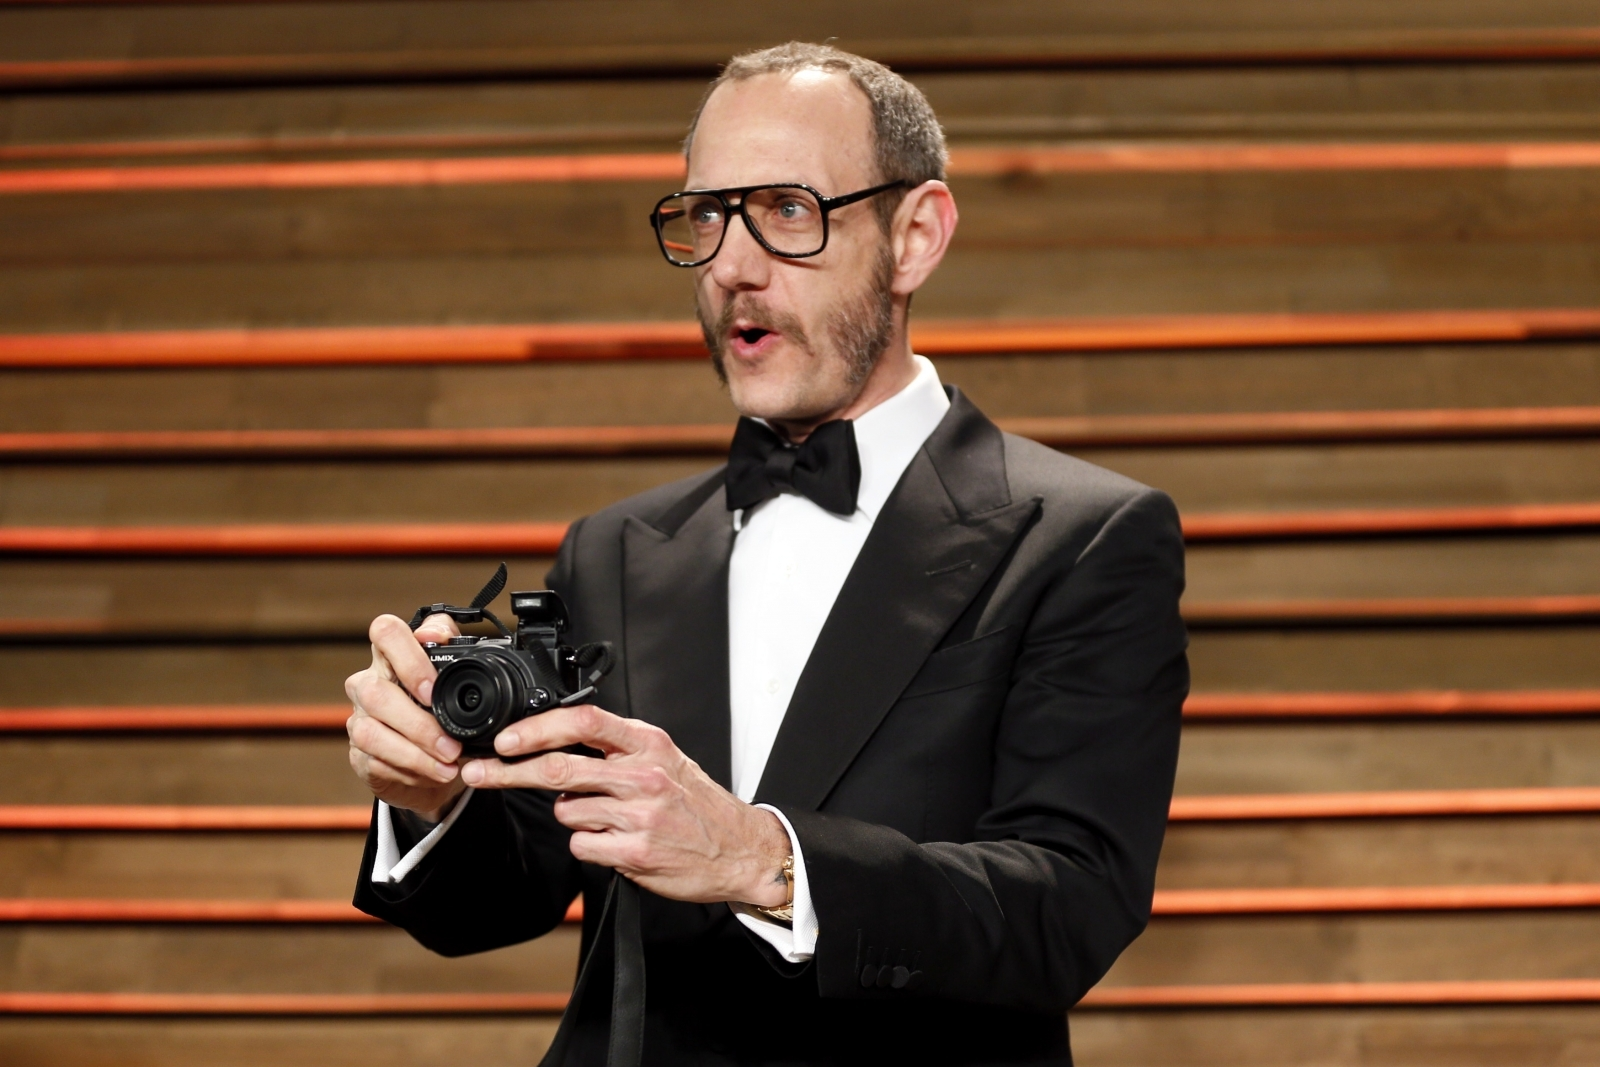 Photographer Terry Richardson Dropped By Conde Nast Over Sexual Harassment Allegations